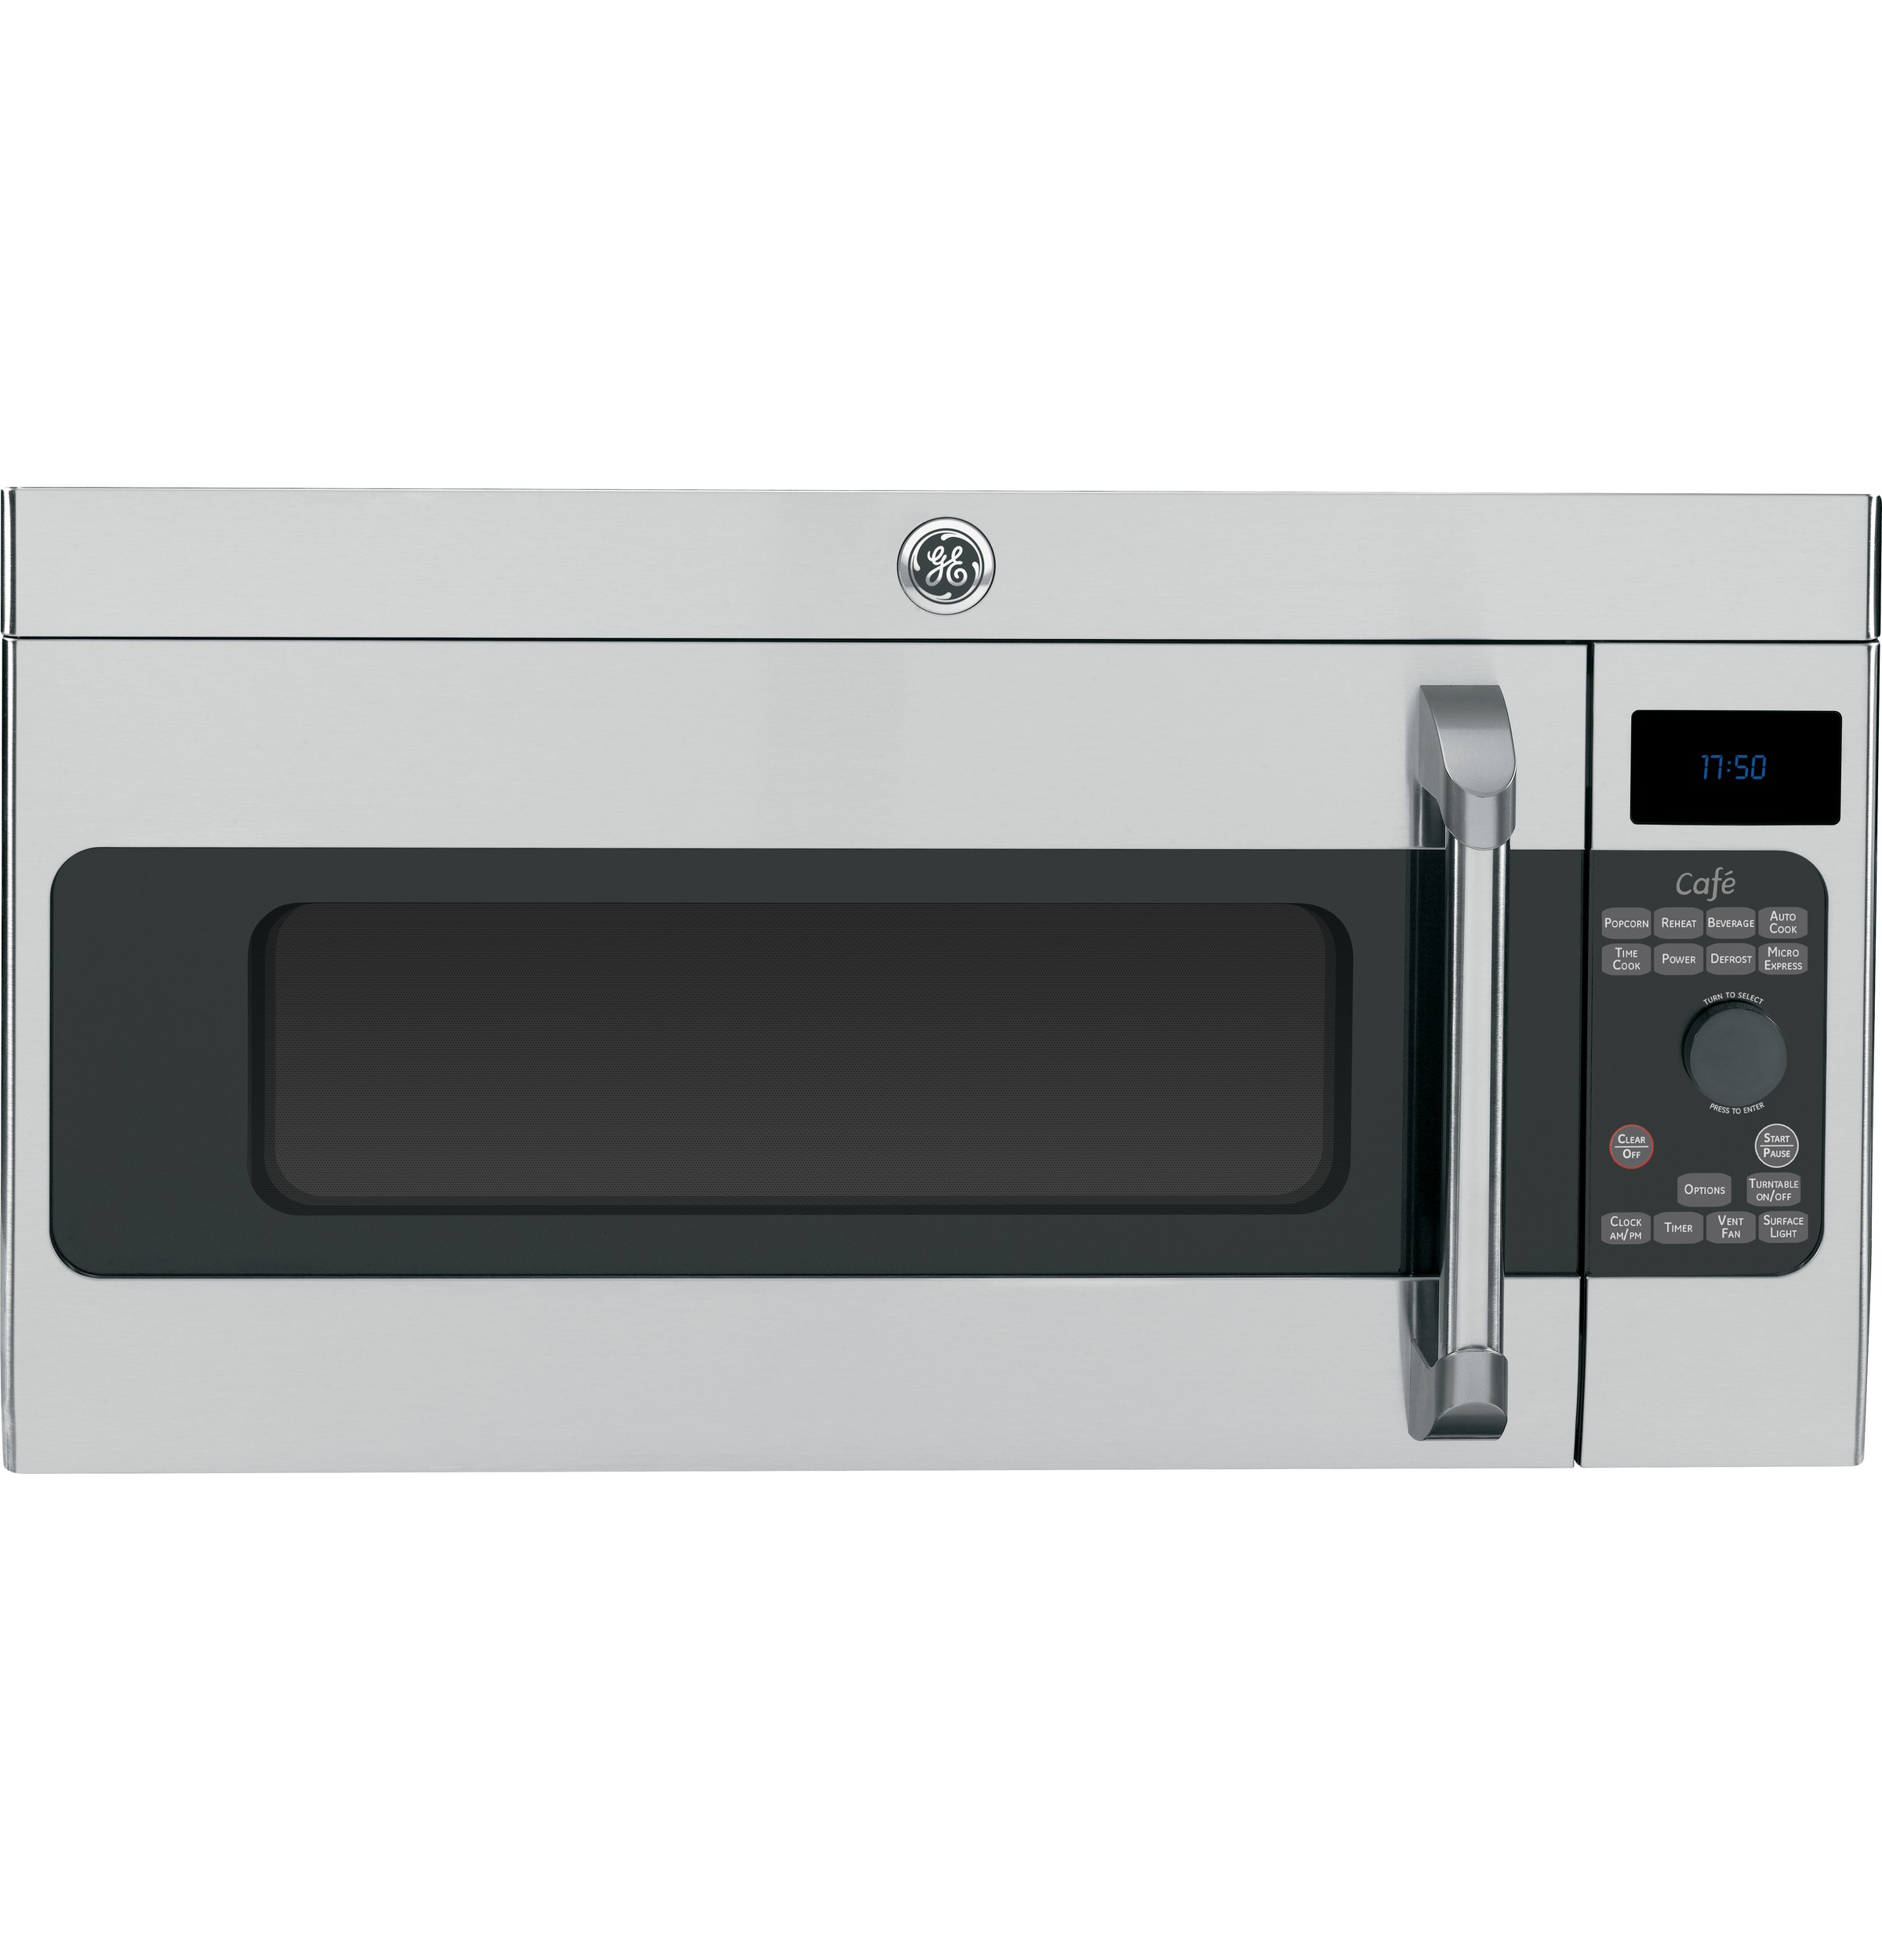 GE Café™ Series 1.7 Cu. Ft. Over-the-Range Microwave Oven